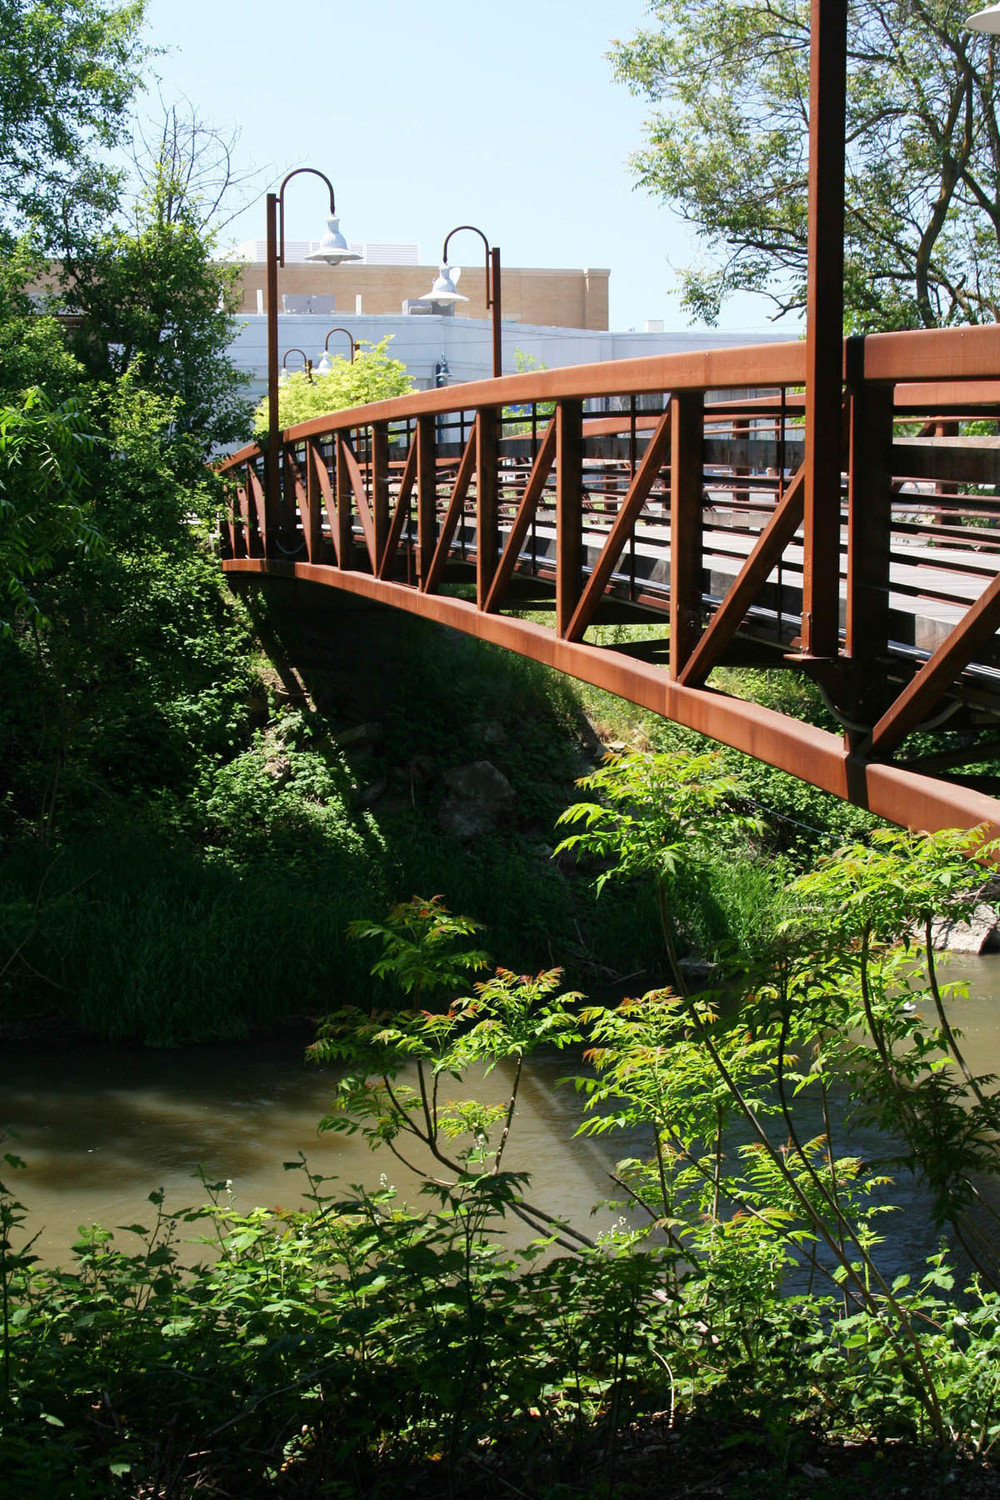 62 Pedestrian Bridge over Bear Creek_W.jpg